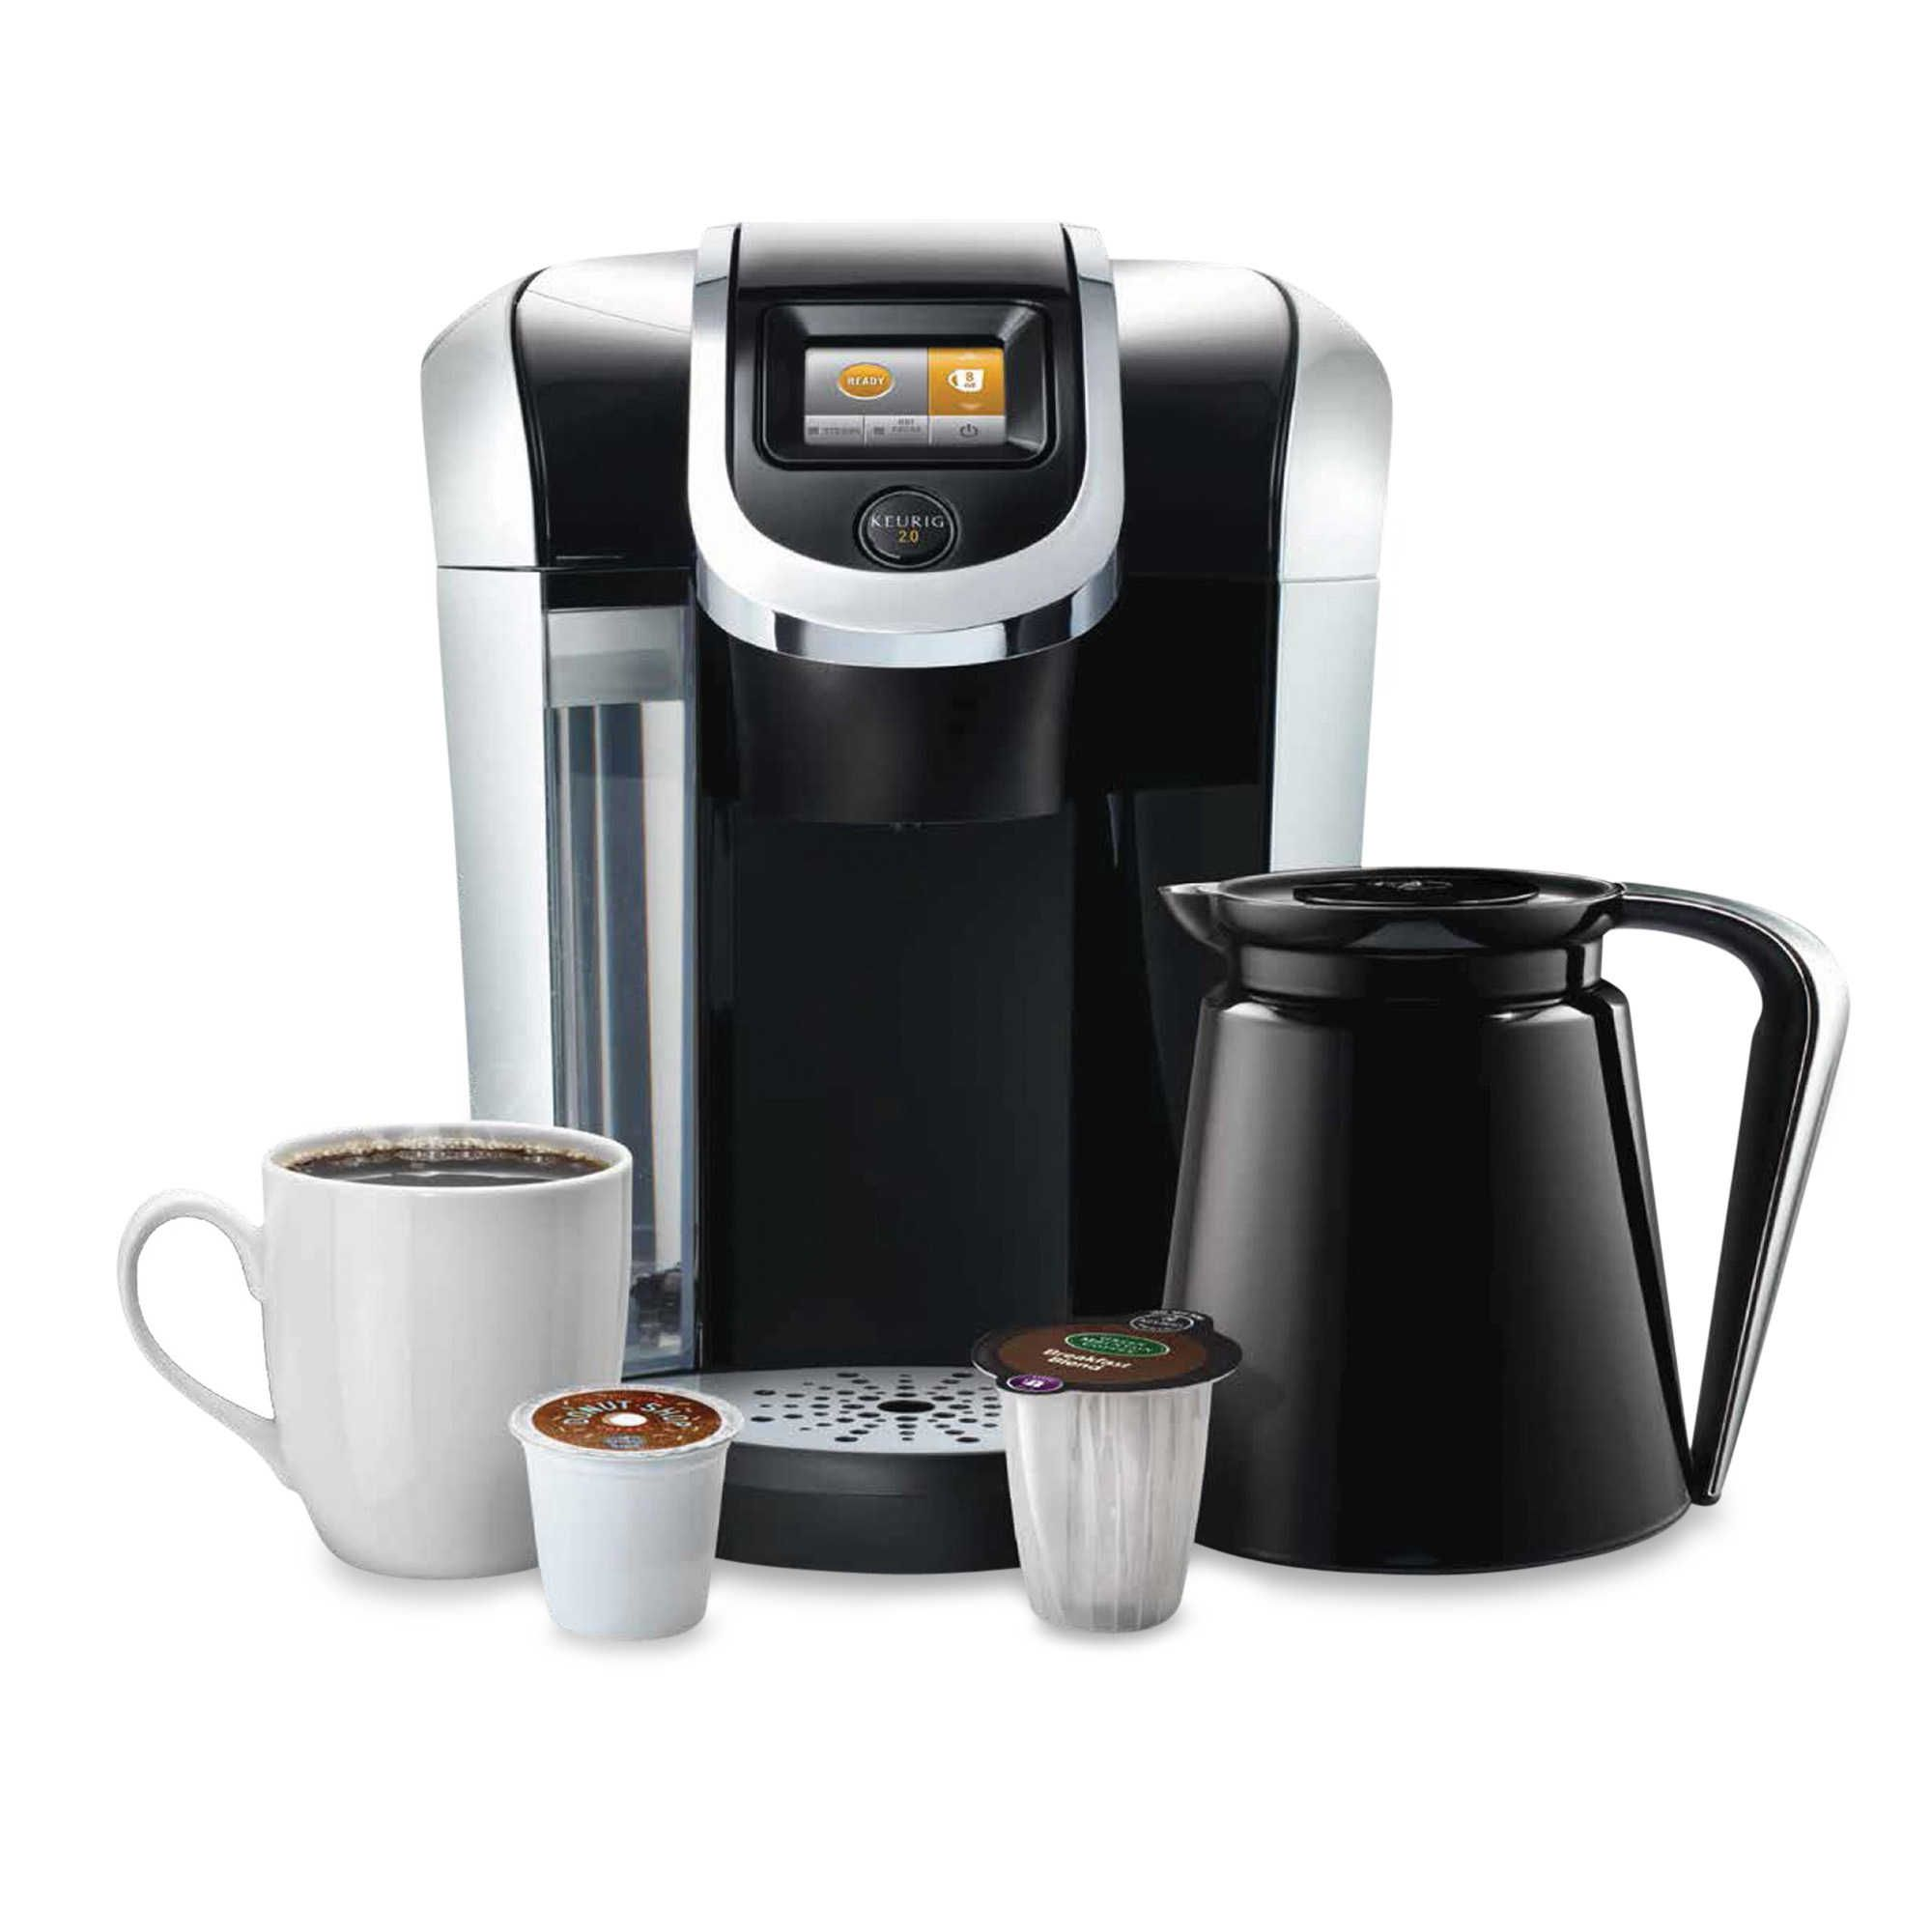 Keurig® 2.0 K450 Coffee Brewing System Keurig, Coffee